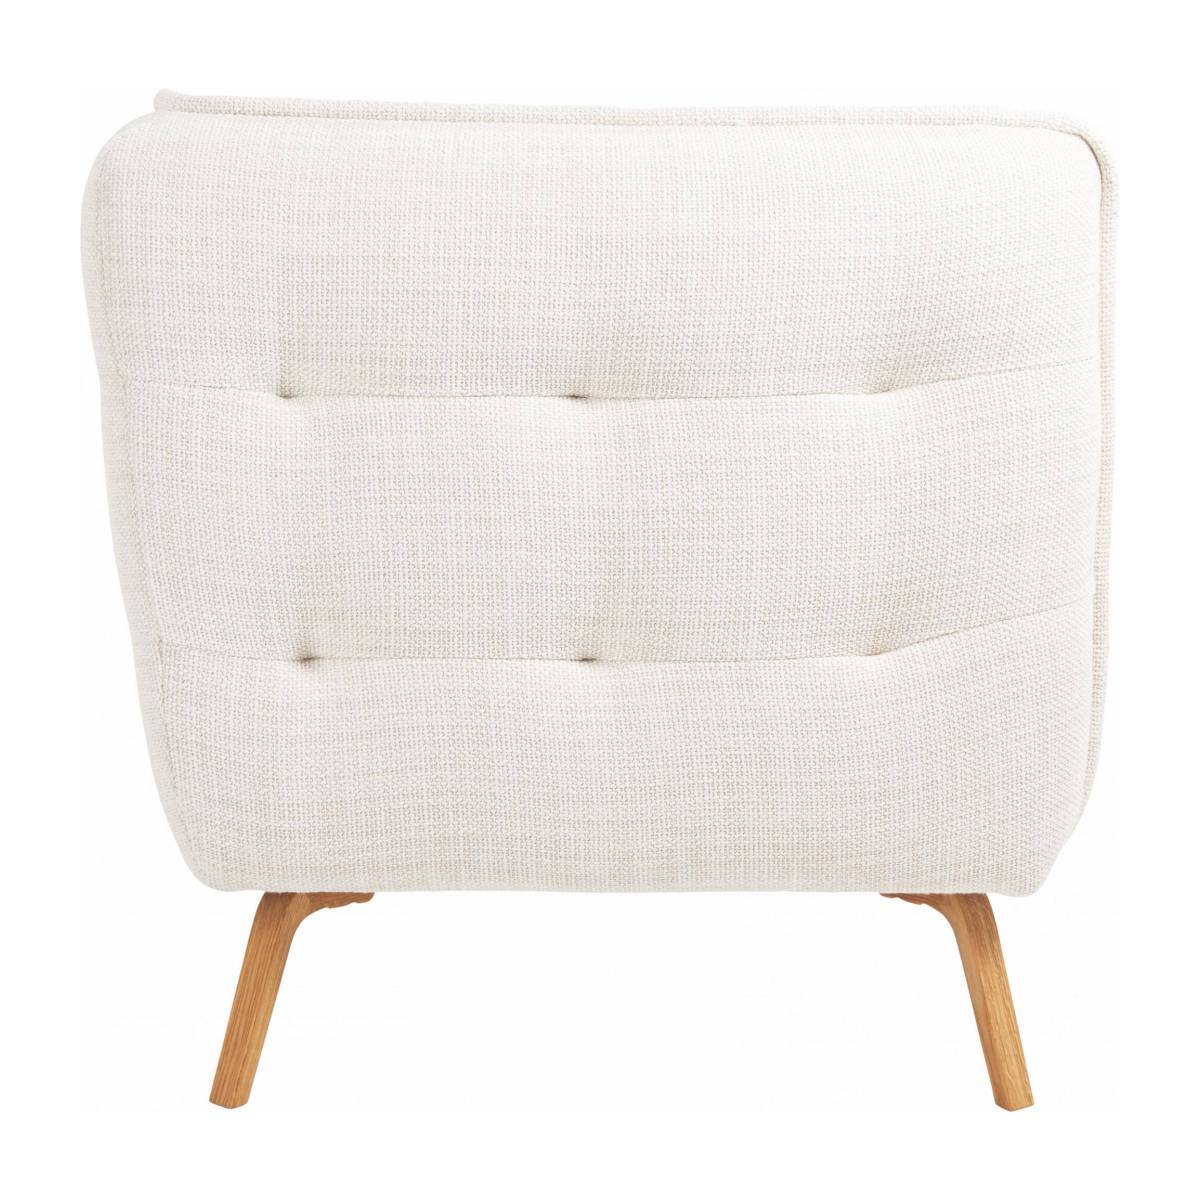 3 seater sofa in Fasoli fabric, snow white and oak legs n°4